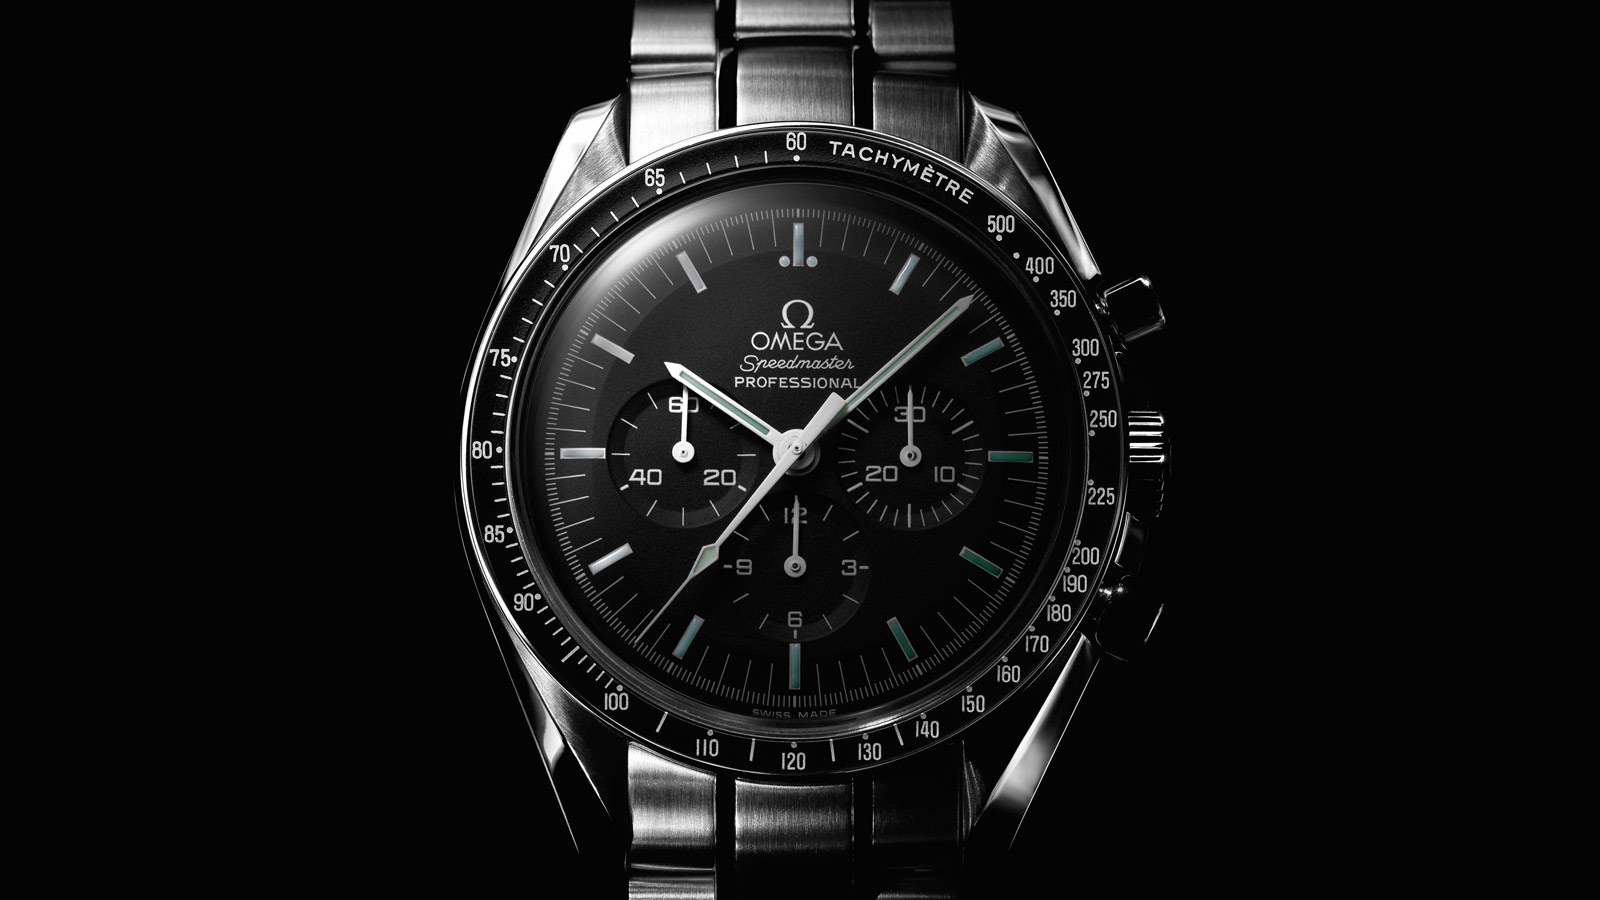 Speedmaster ムーンウォッチ Moonwatch Professional Chronograph 42 mm - 311.30.42.30.01.005 - ビュー 2